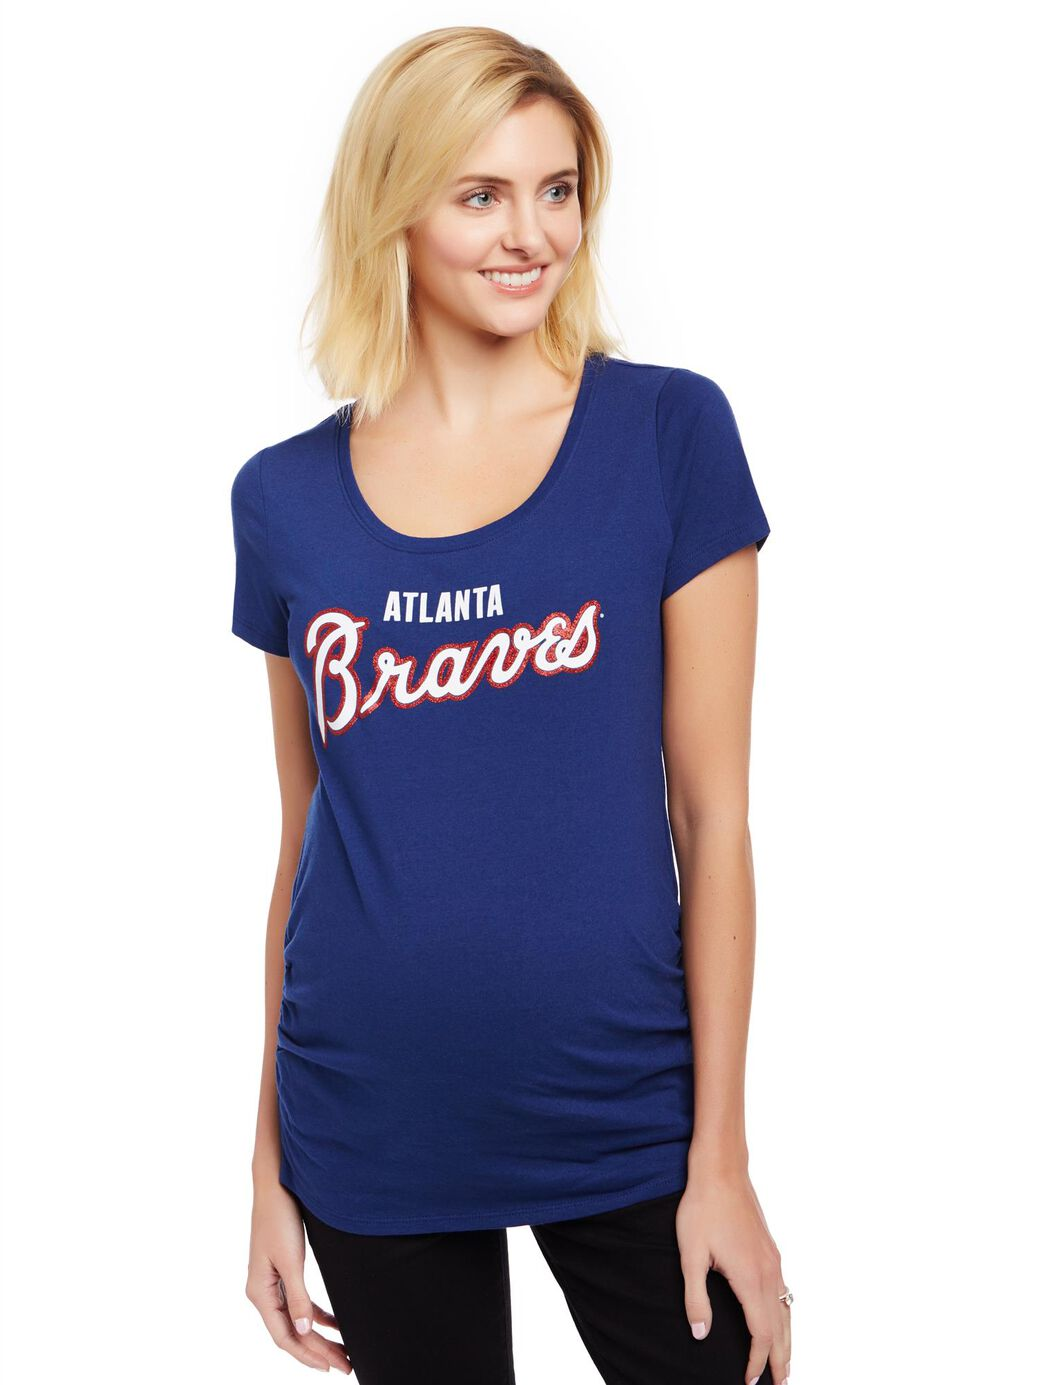 Atlanta Braves MLB You're Out Maternity Tee at Motherhood Maternity in Victor, NY | Tuggl